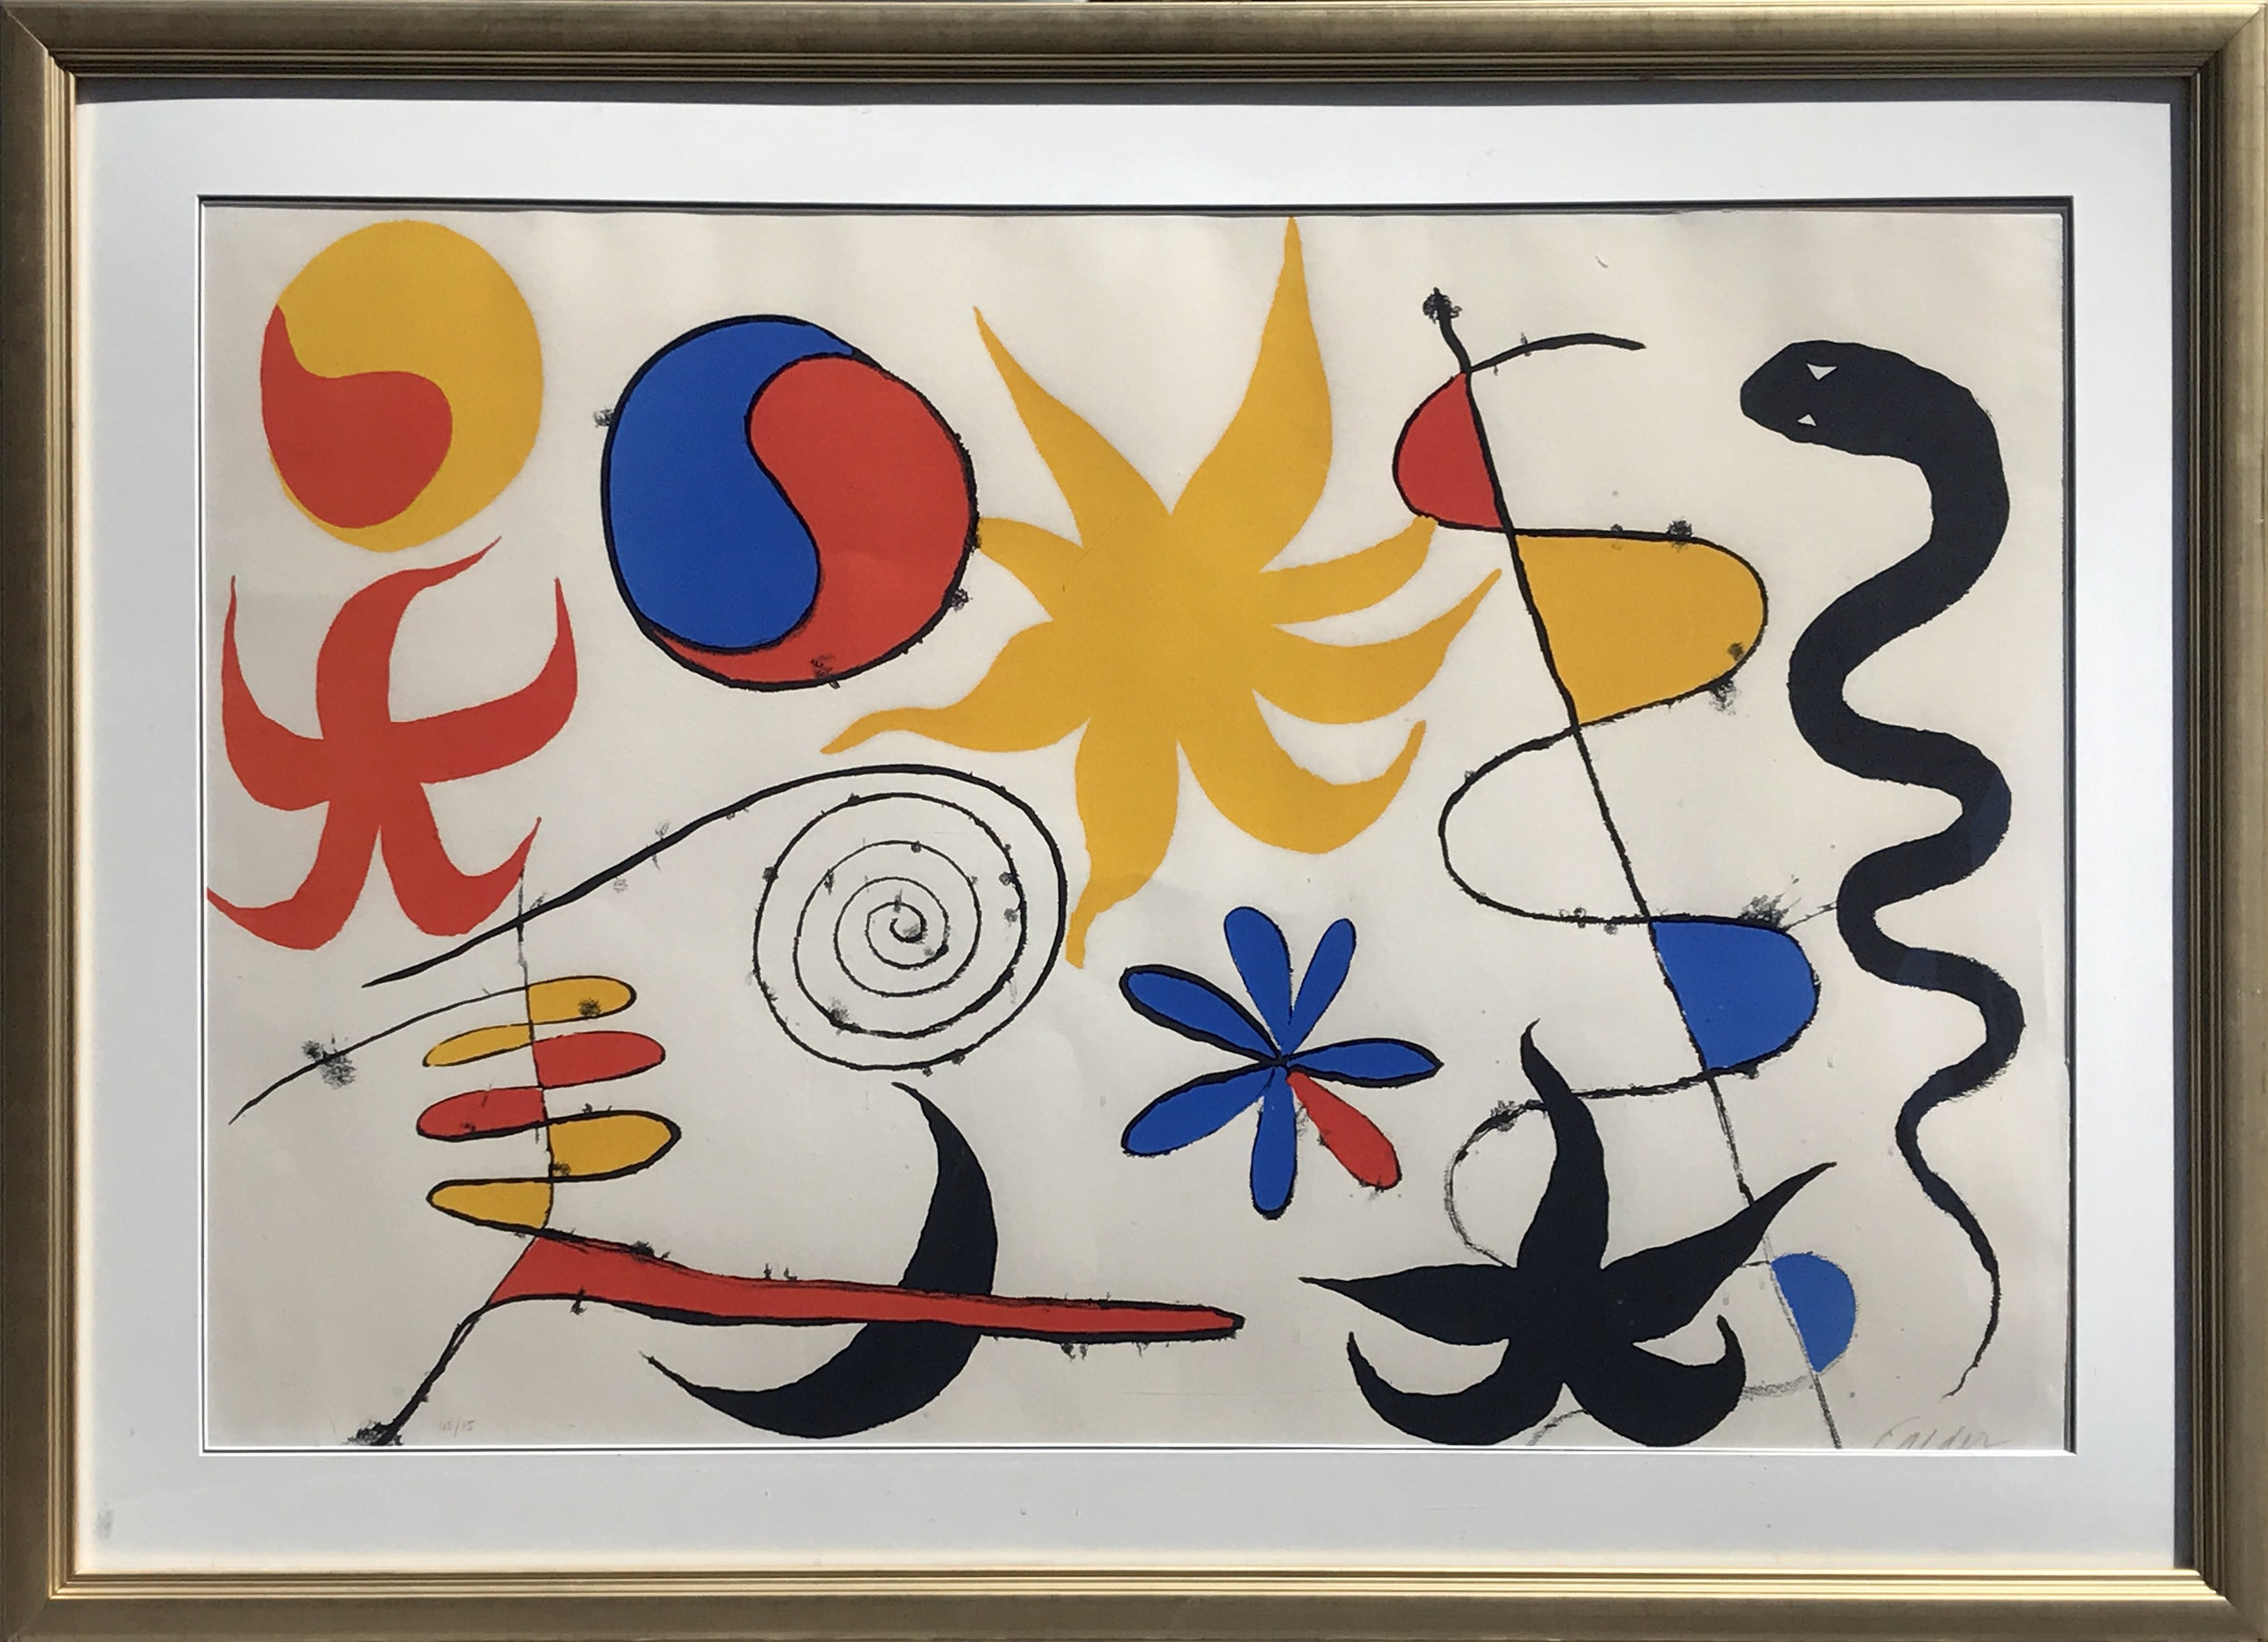 3.Alexander Calder. Serpent in the Stars, 1960. Lithograph, ed. 46/75, 28 ¼ x 42 ¼ in.